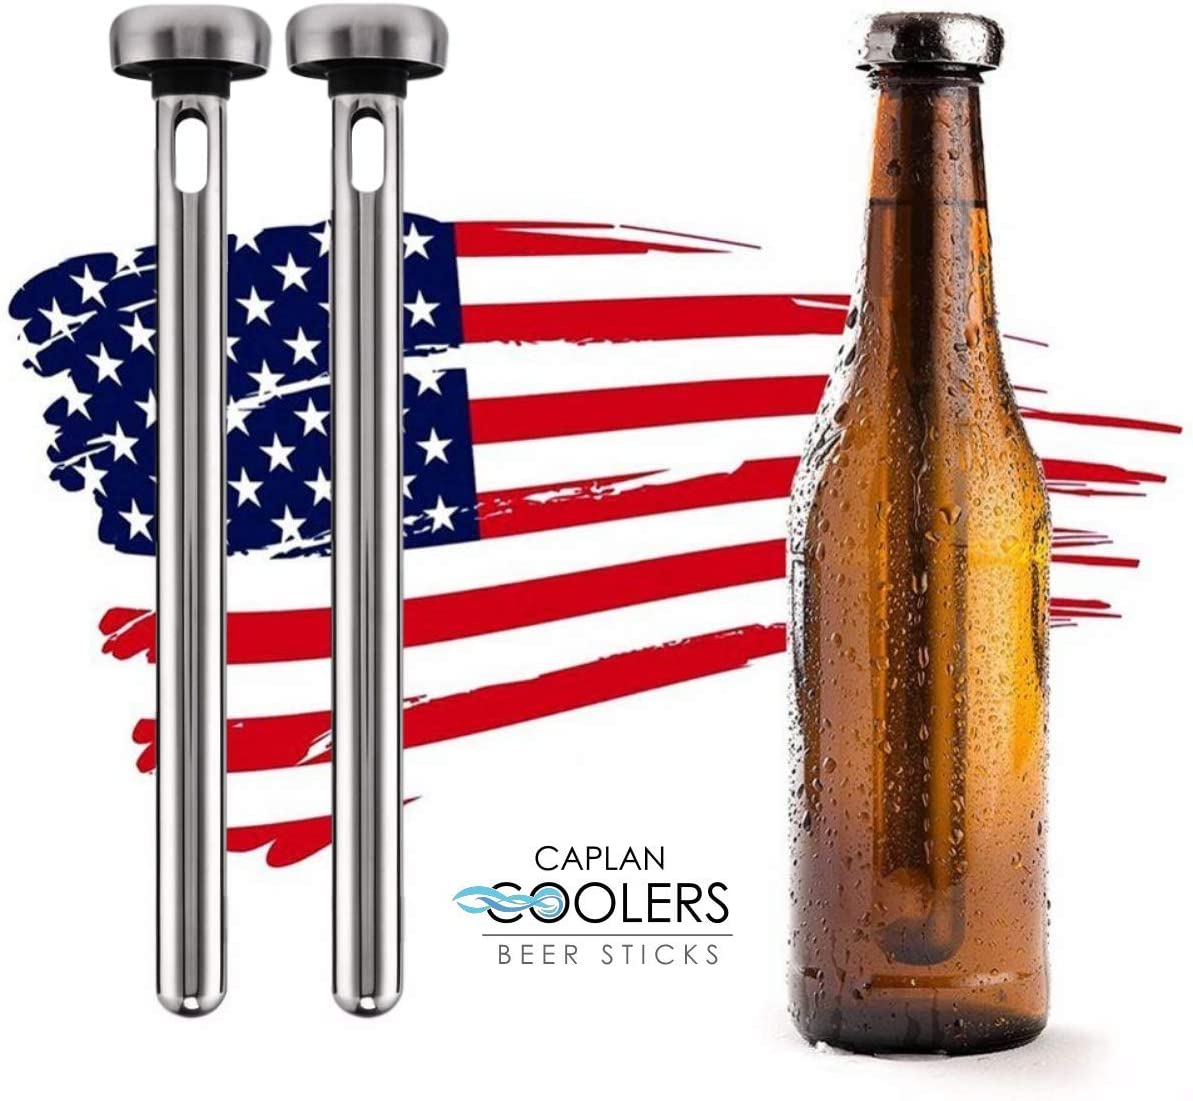 Caplan Coolers: Stainless Steel Beer Bottle Chiller Cooling Sticks (Set of 2)